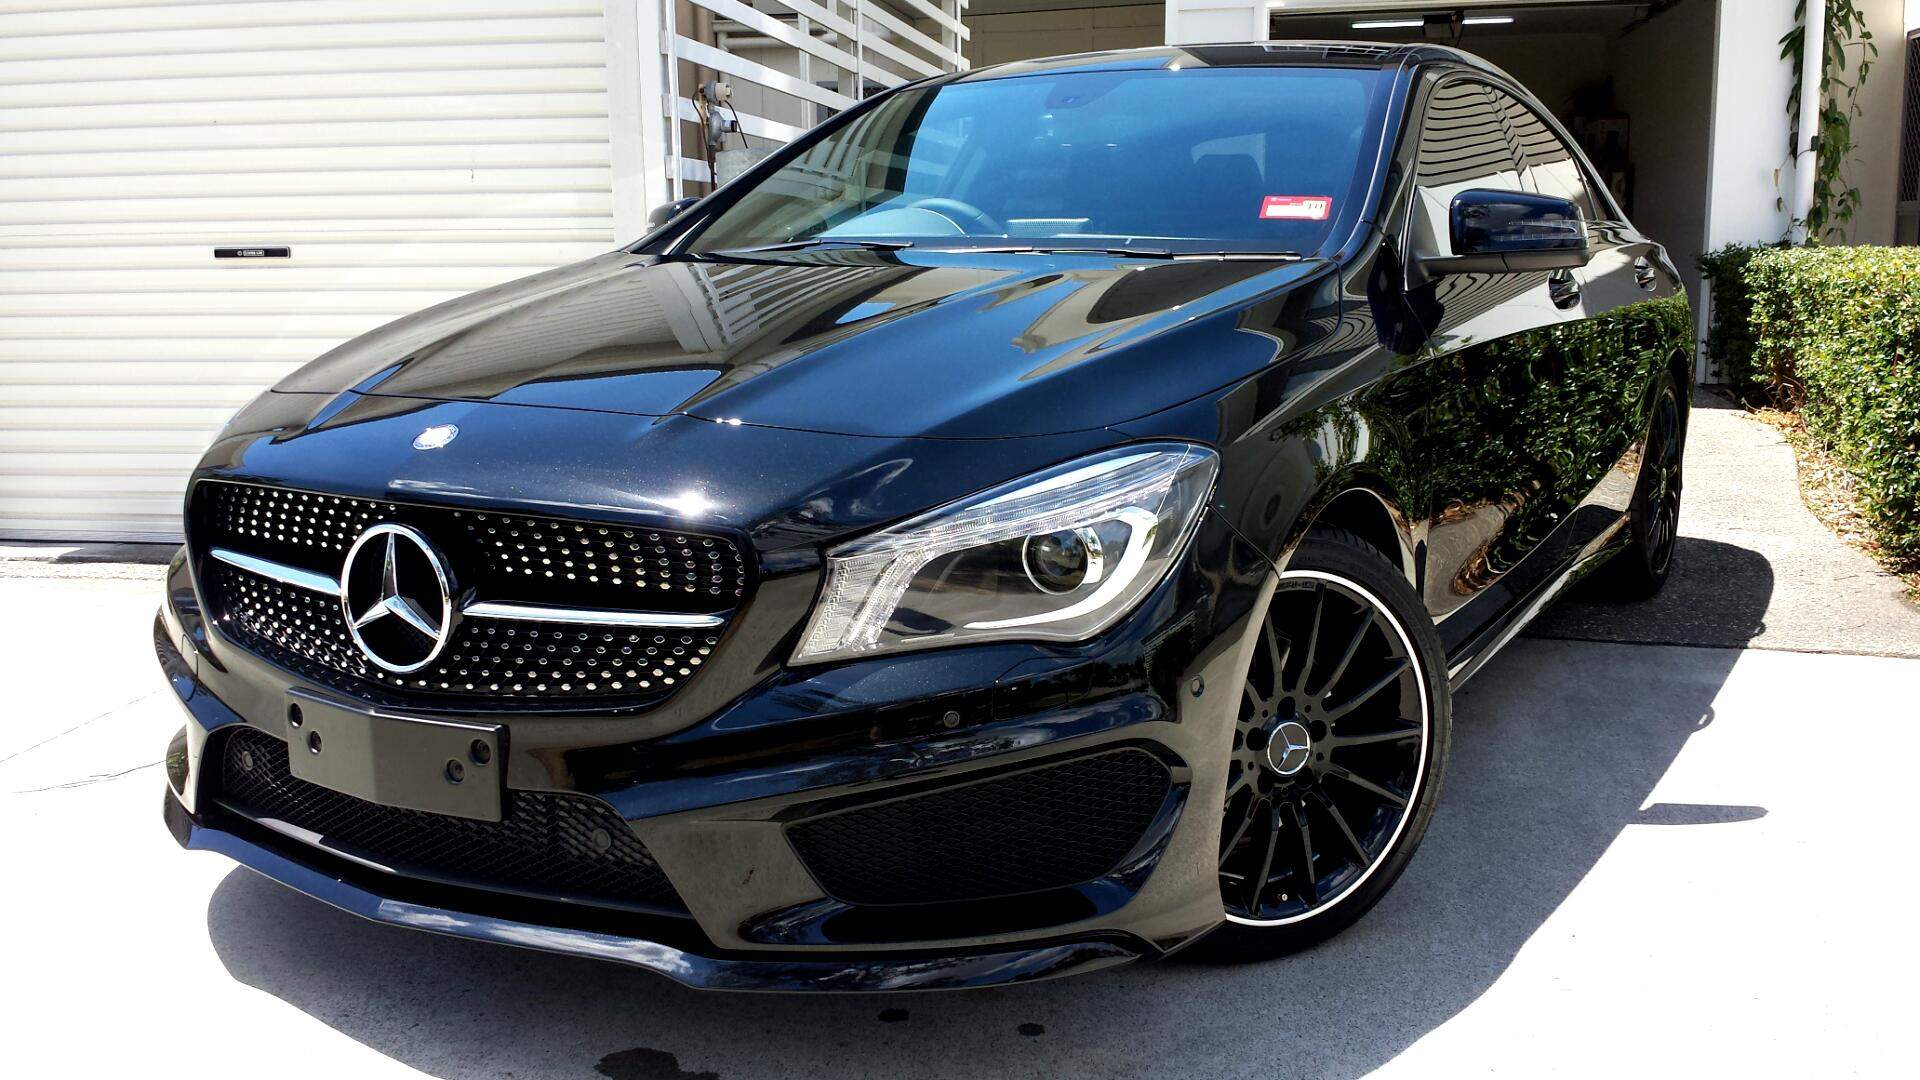 Mercedes Cla 250 Blacked Out cla in black pictures? - page 4